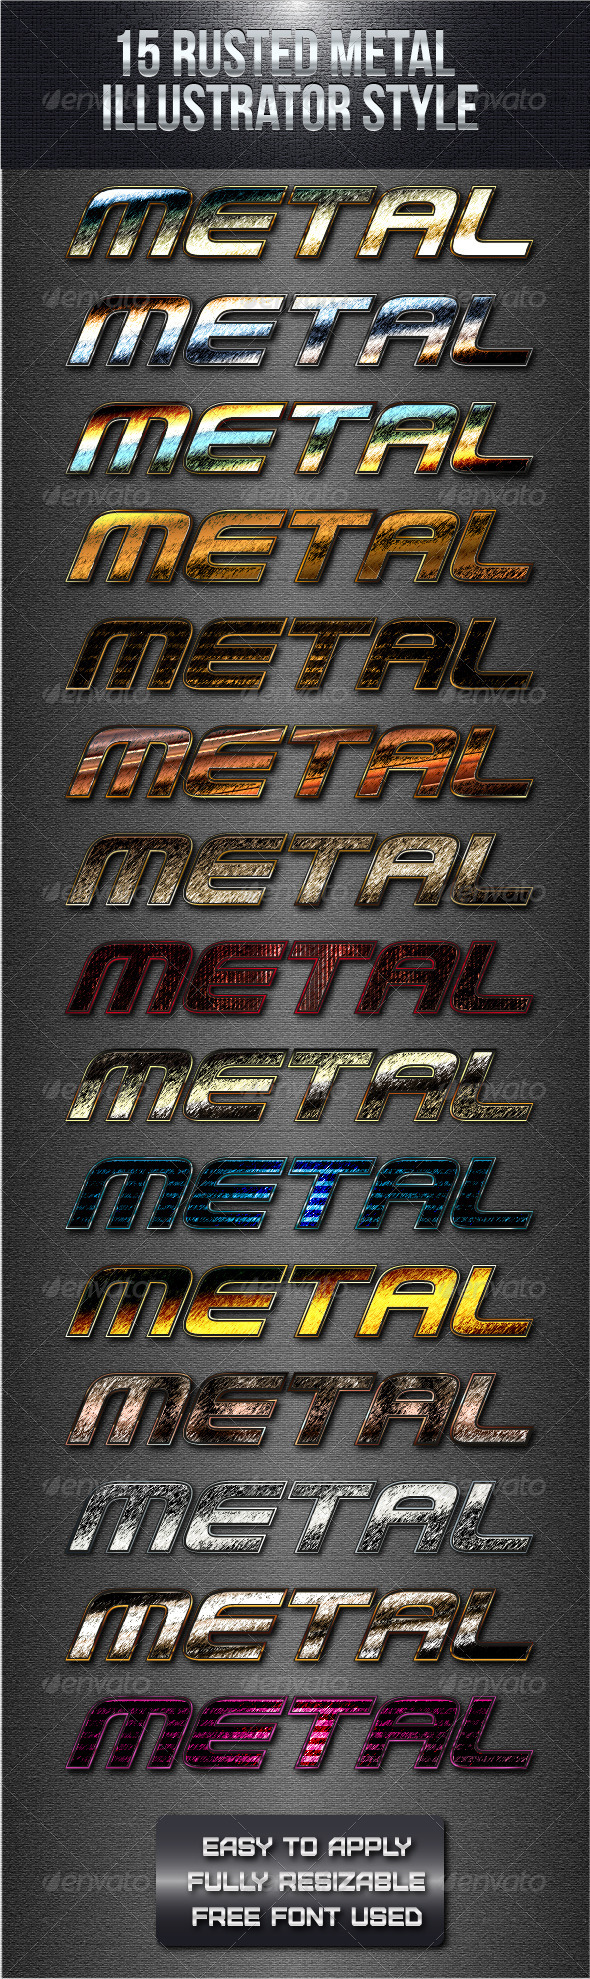 GraphicRiver 15 Rusted Metal Illustrator Style 4871551